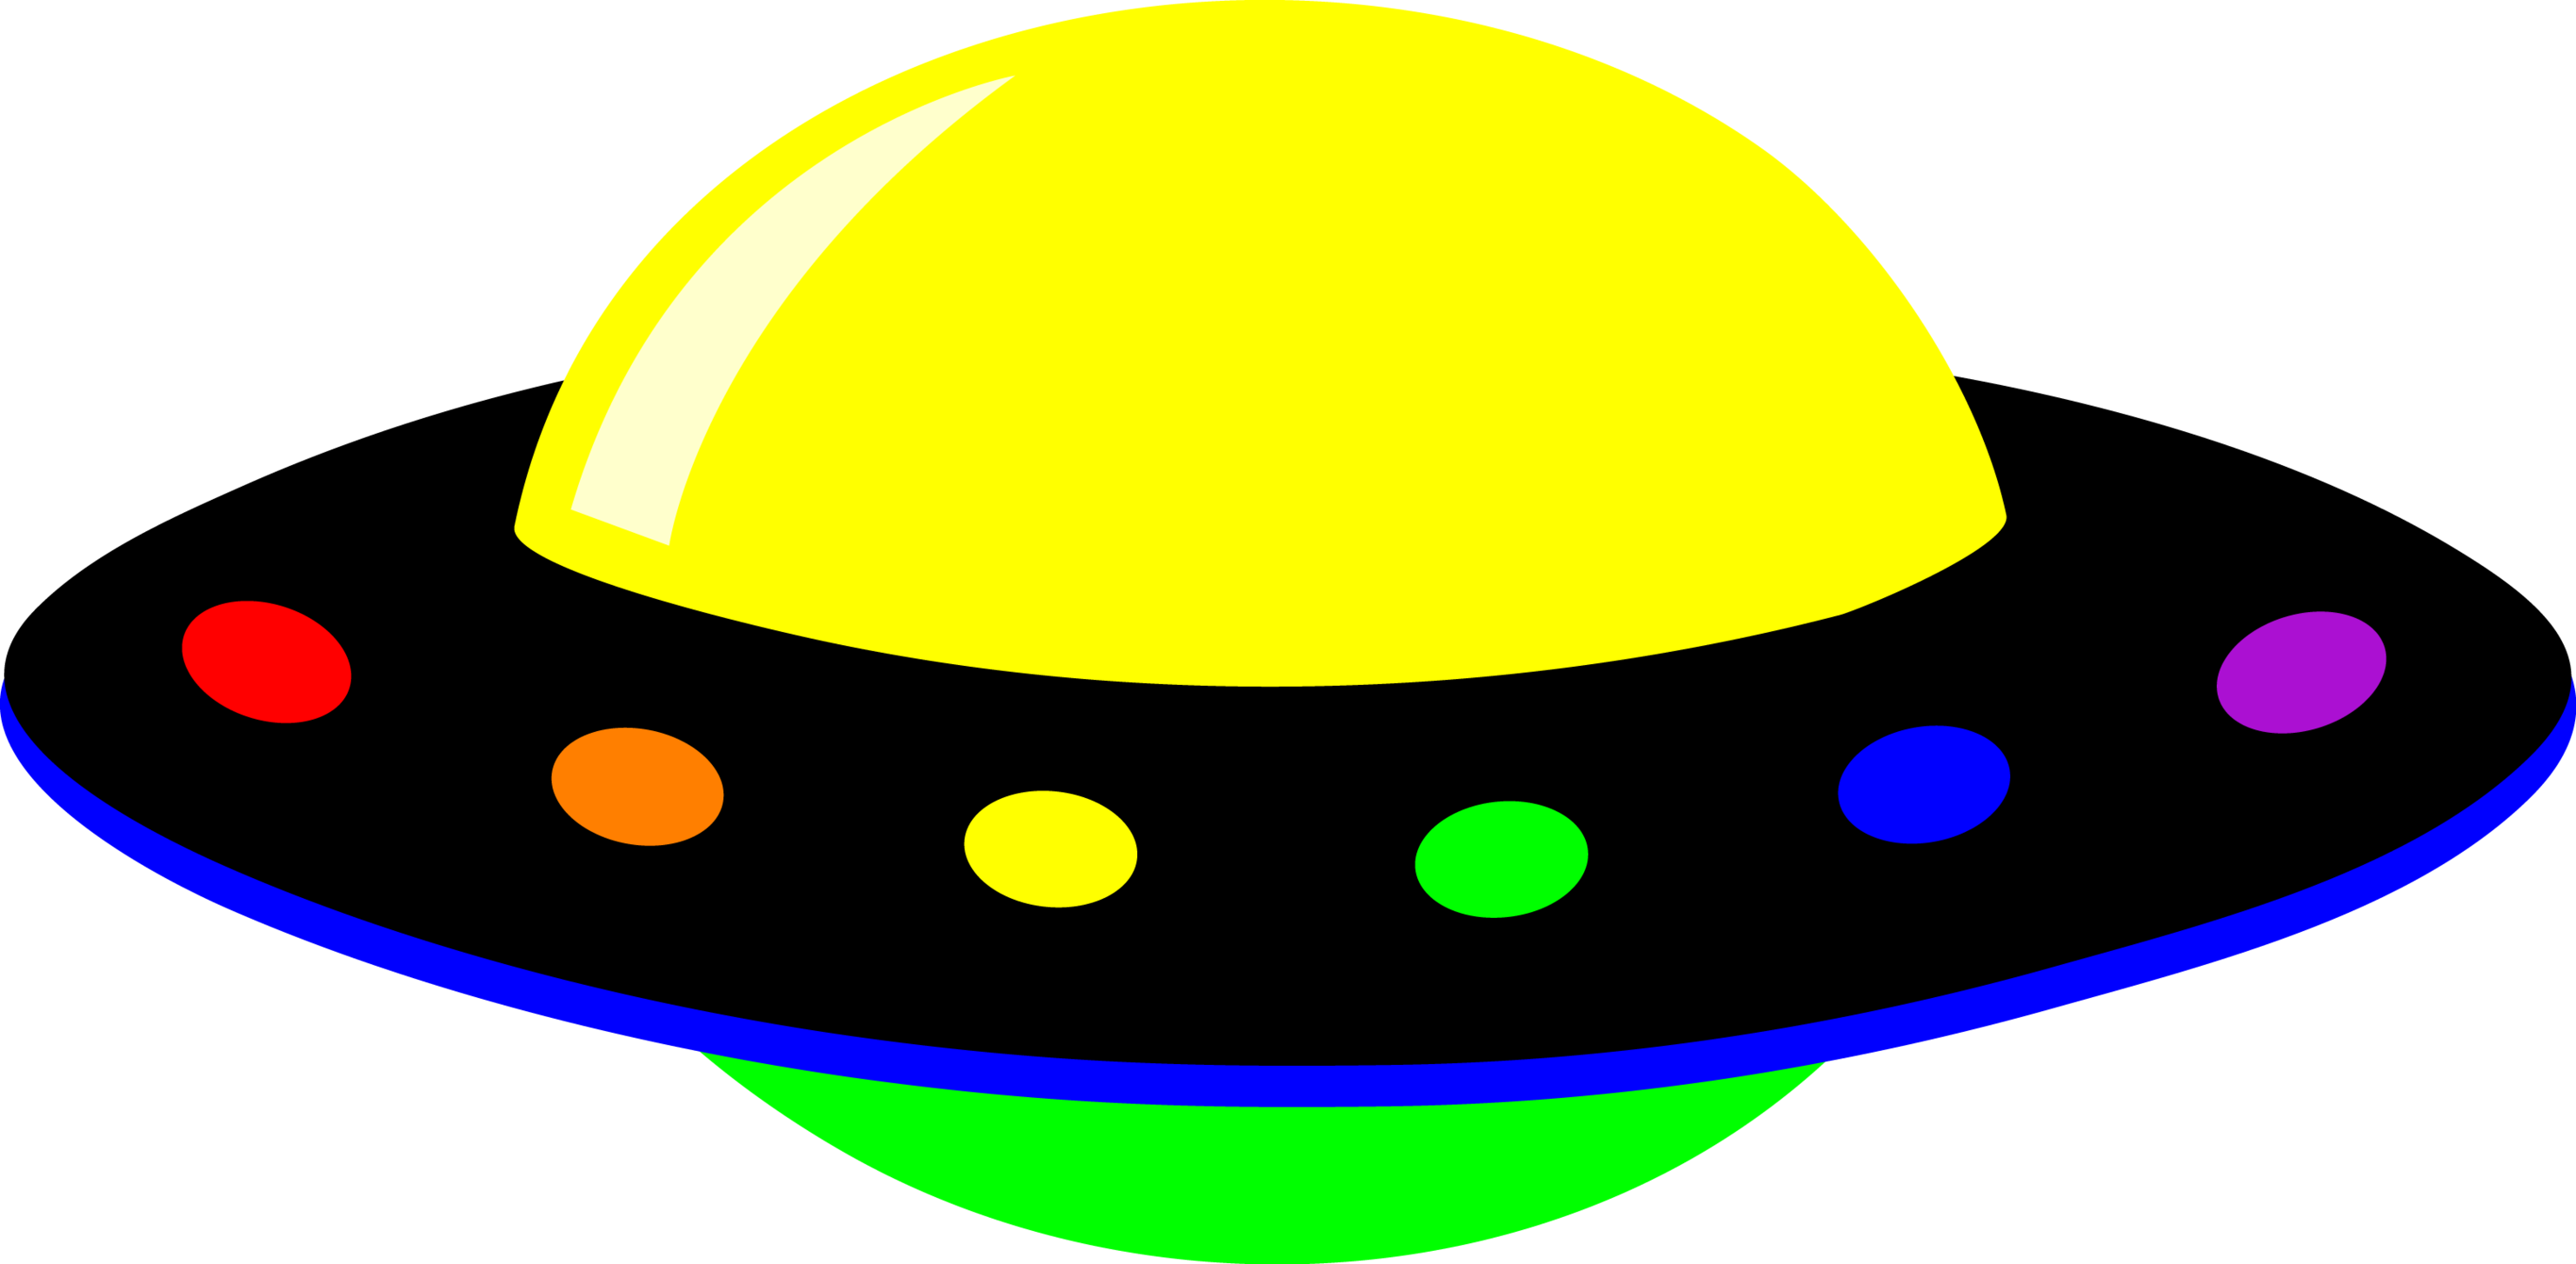 Spaceship clipart #13, Download drawings